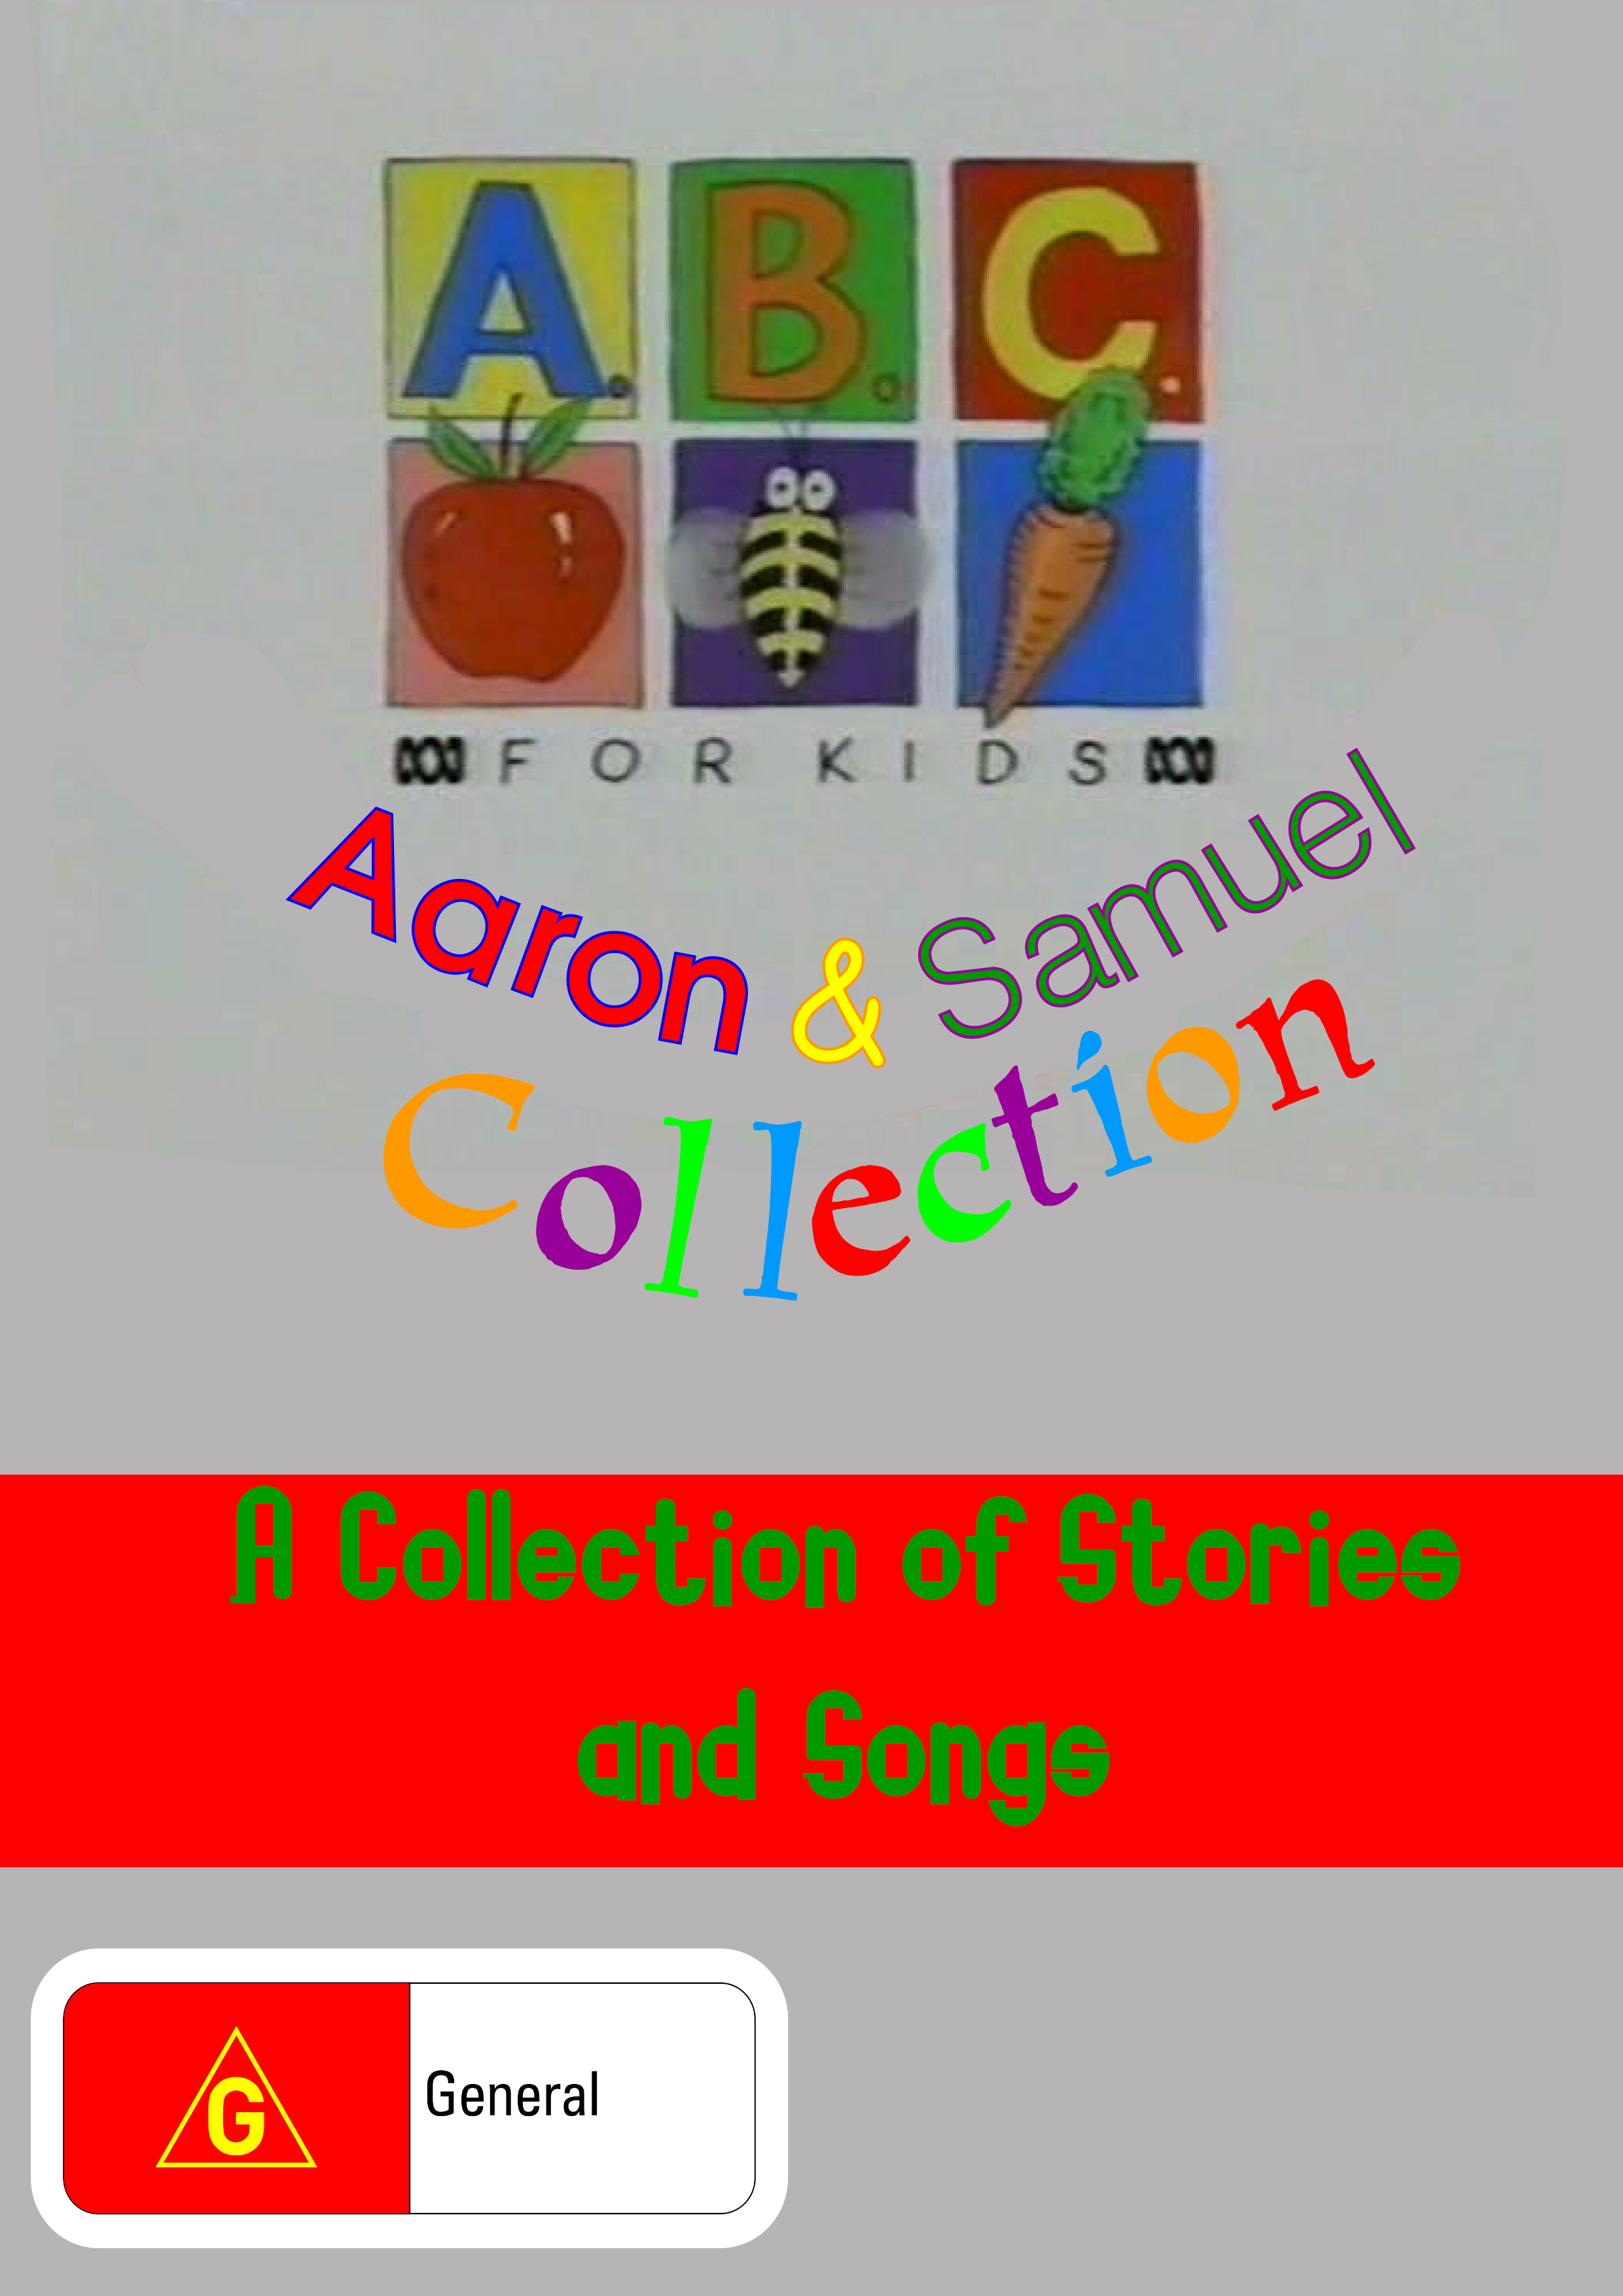 ABC For Kids Aaron and Samuel Collection.png